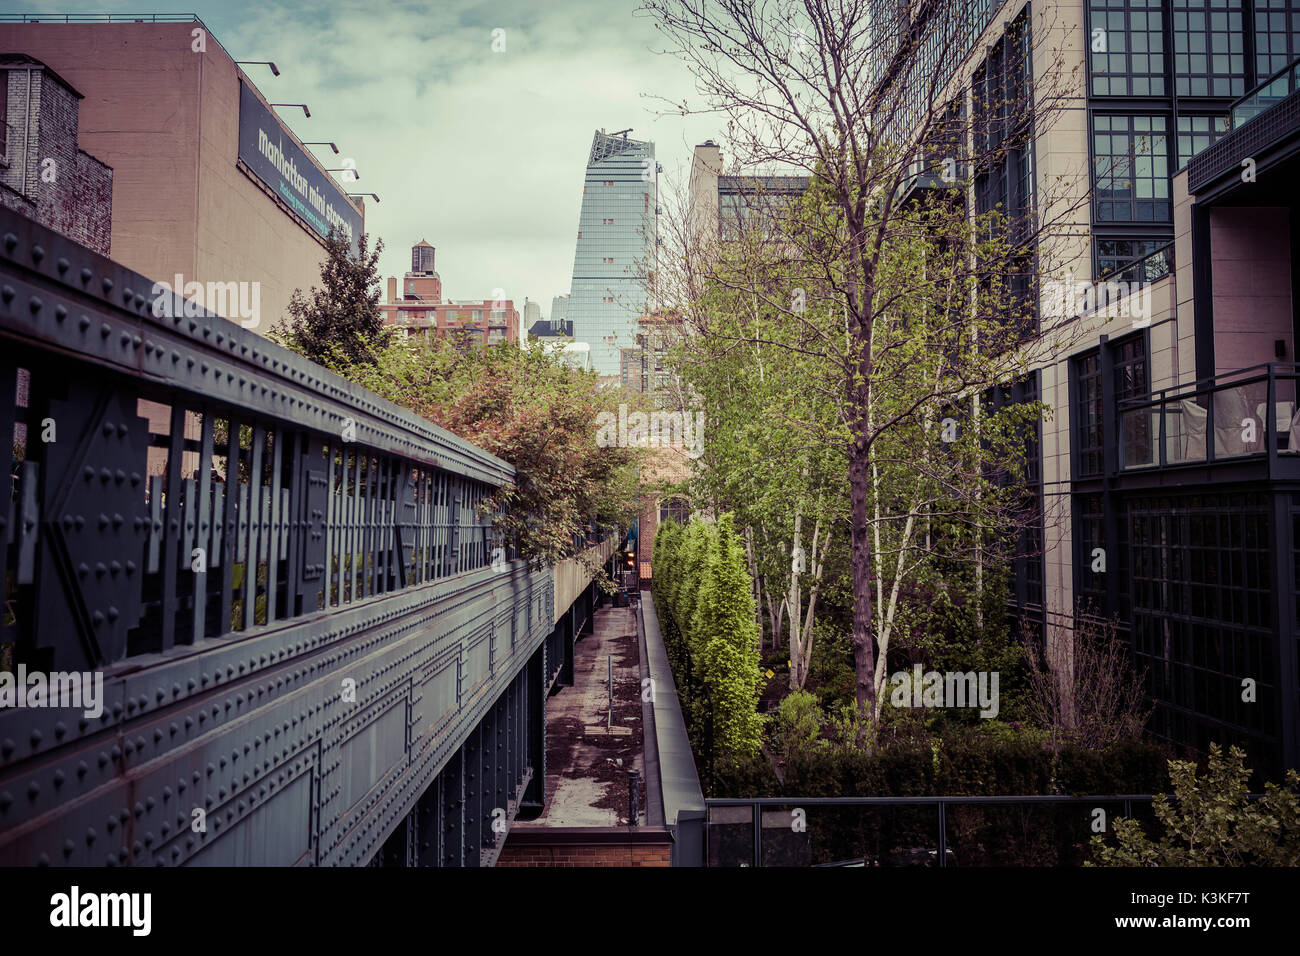 The High Line is a public park built on a historic freight rail line elevated above the streets on Manhattan's West Stock Photo